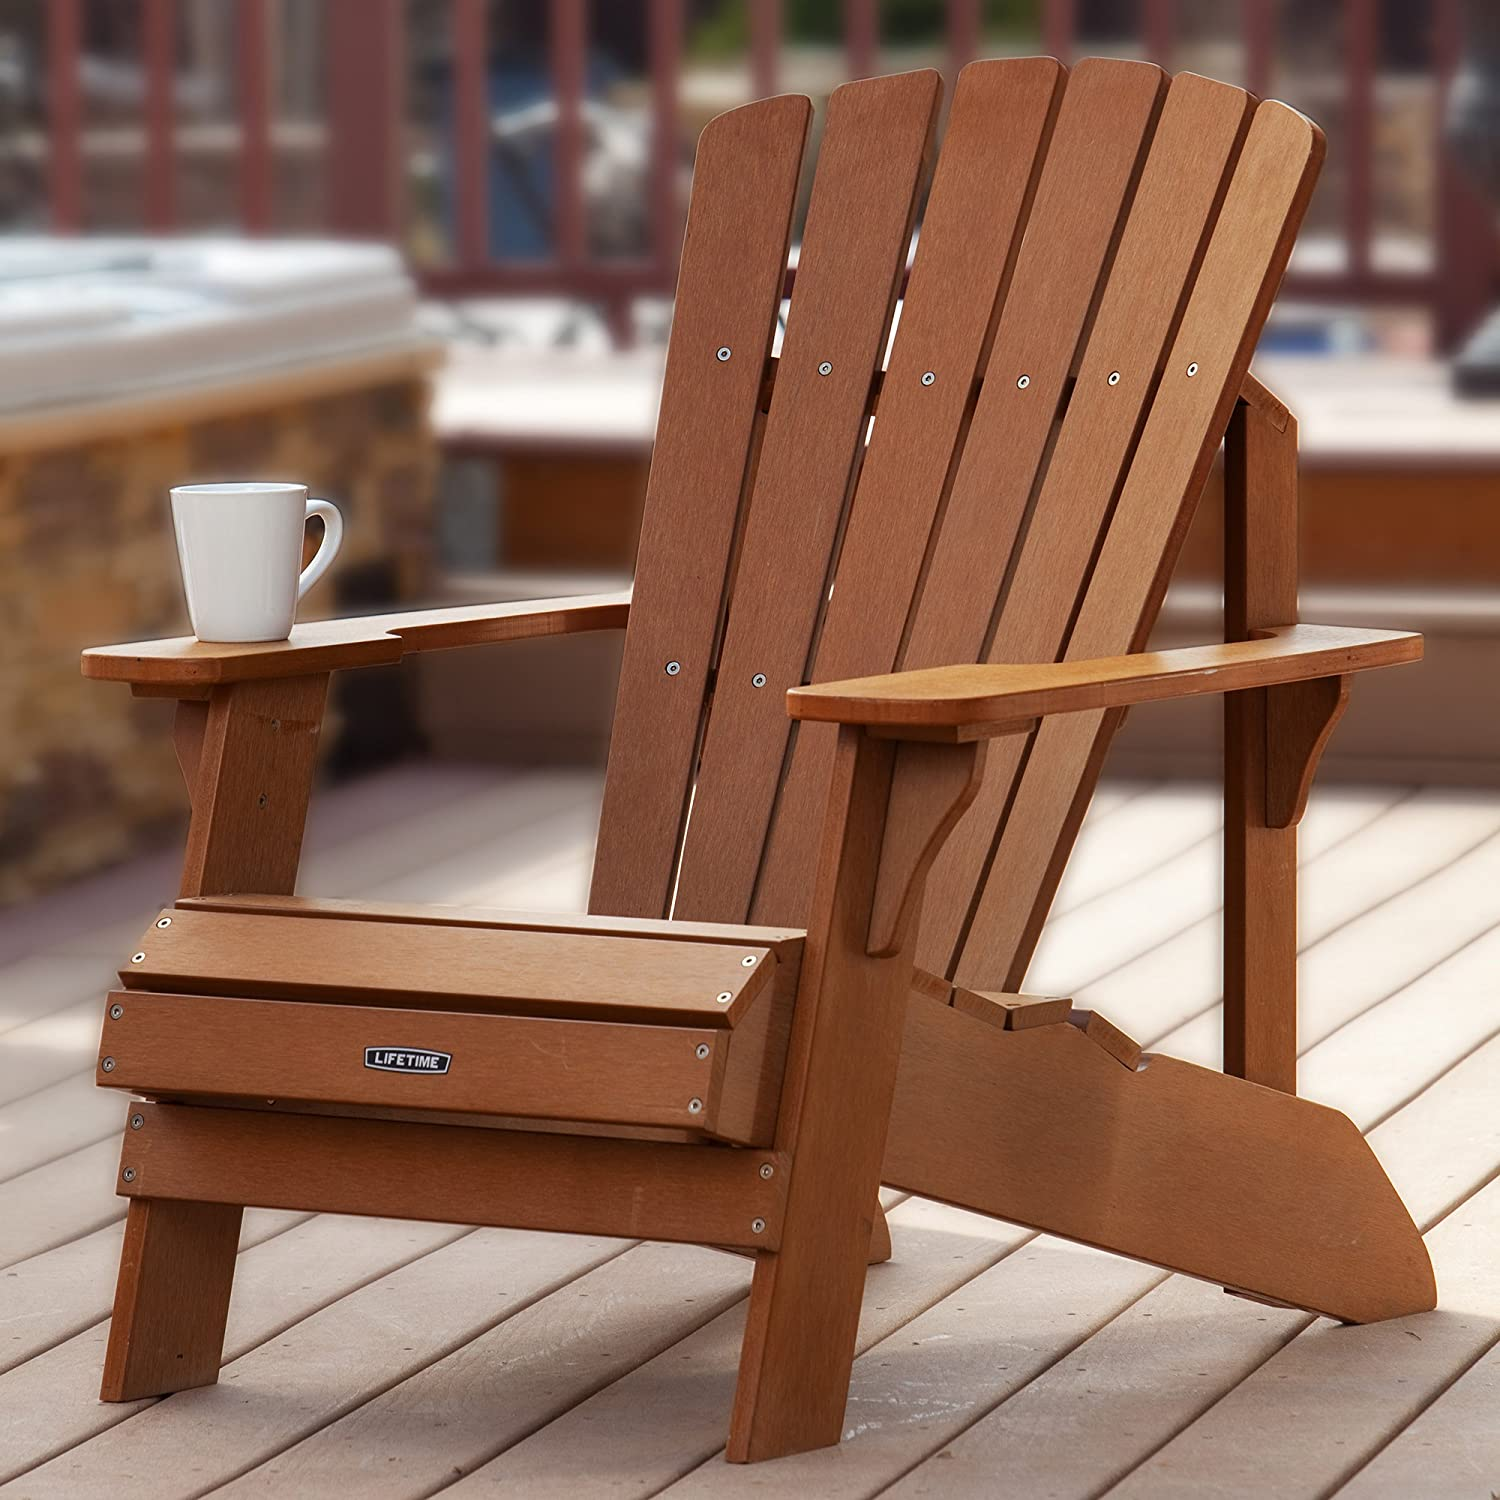 Amazon.com : Lifetime Faux Wood Adirondack Chair, Light Brown - 60064 :  Patio, Lawn & Garden - Amazon.com : Lifetime Faux Wood Adirondack Chair, Light Brown